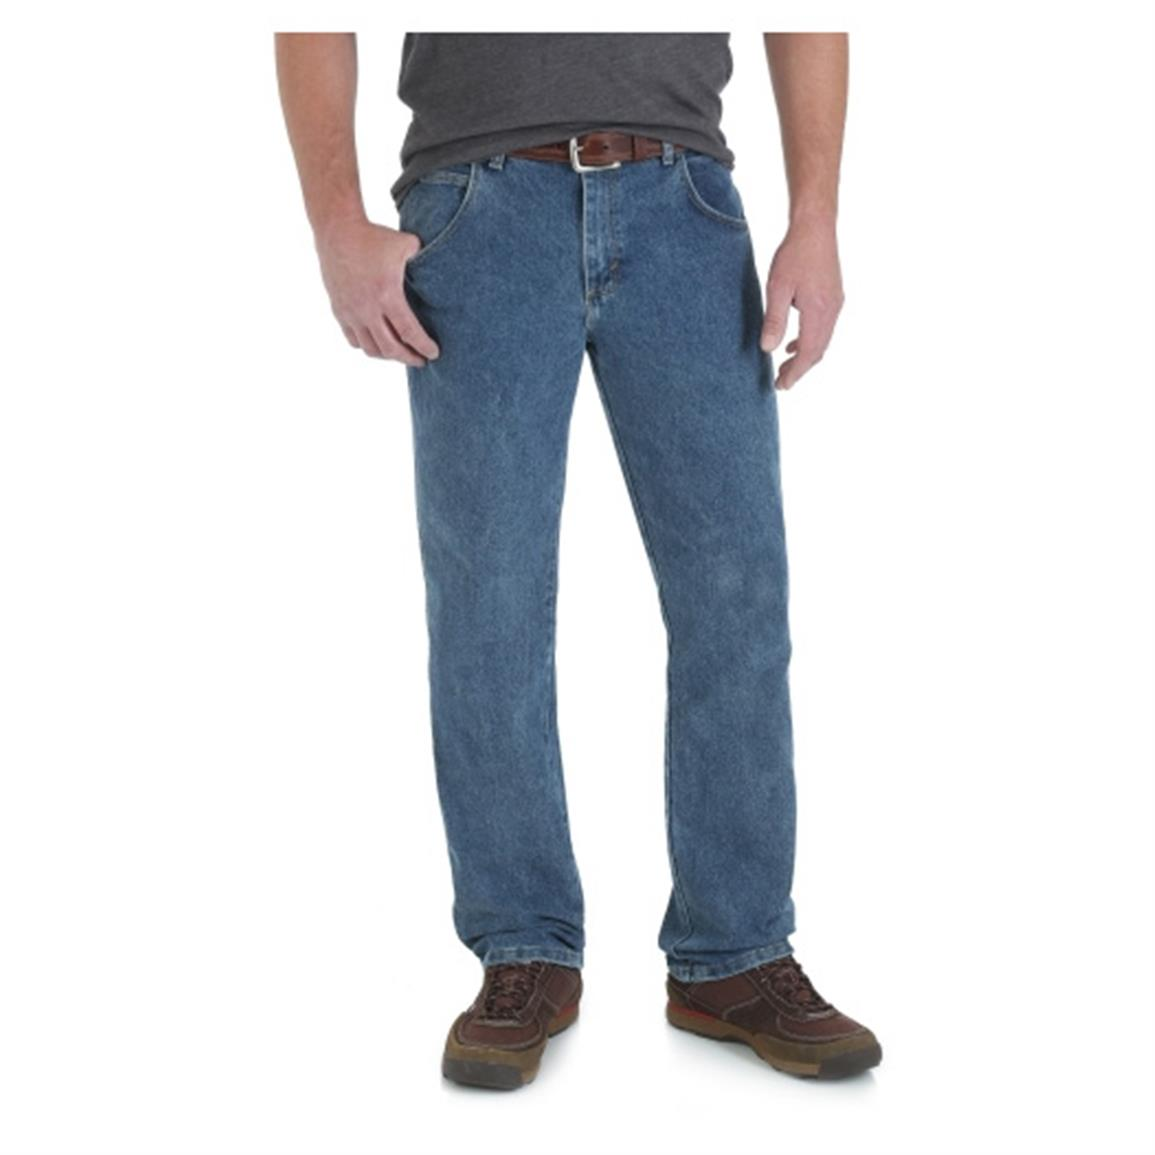 Wrangler Rugged Wear Men's Regular Fit Jean, Vintage Stone